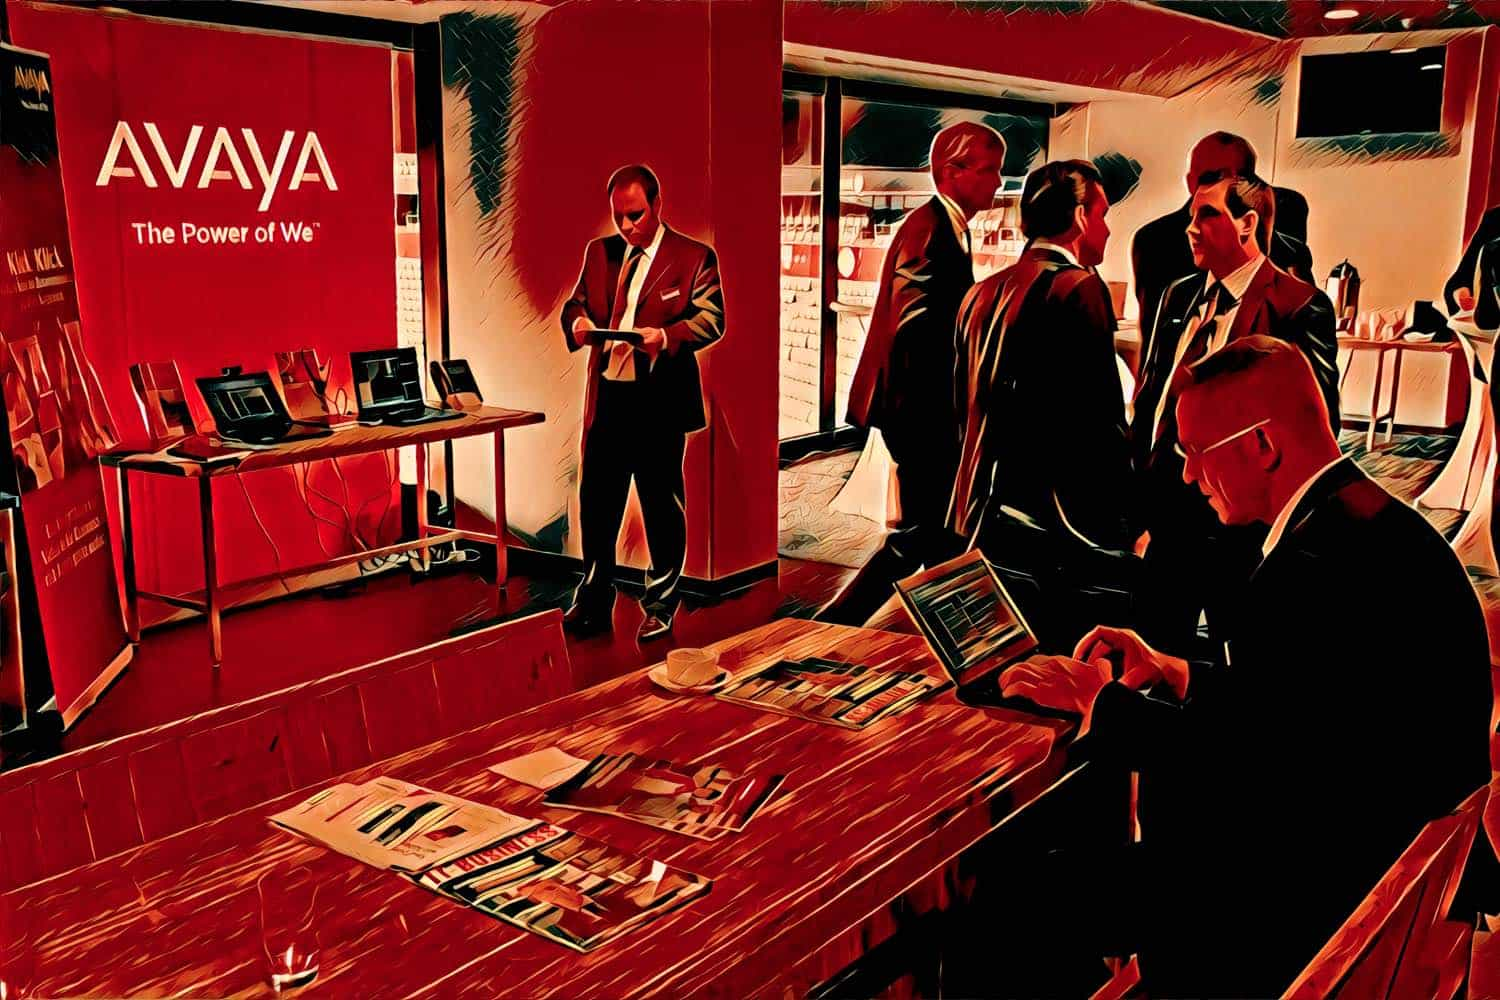 Avaya Conference Booth